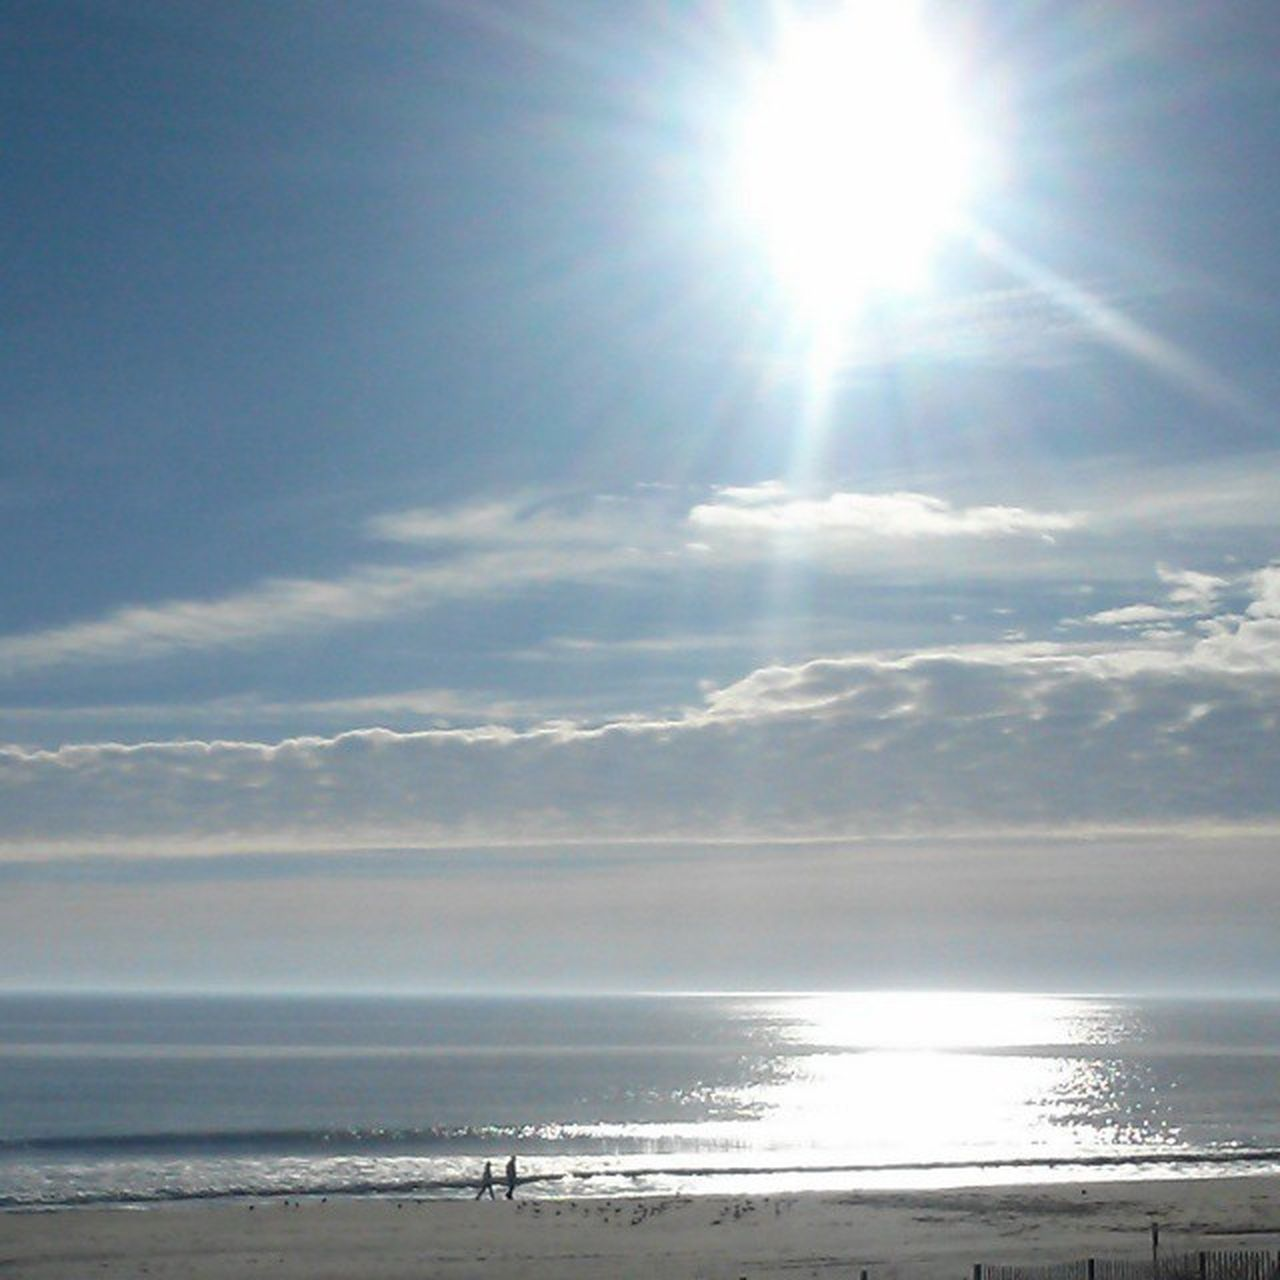 sea, sunbeam, sunlight, nature, beauty in nature, water, sun, sky, scenics, horizon over water, day, outdoors, beach, tranquility, no people